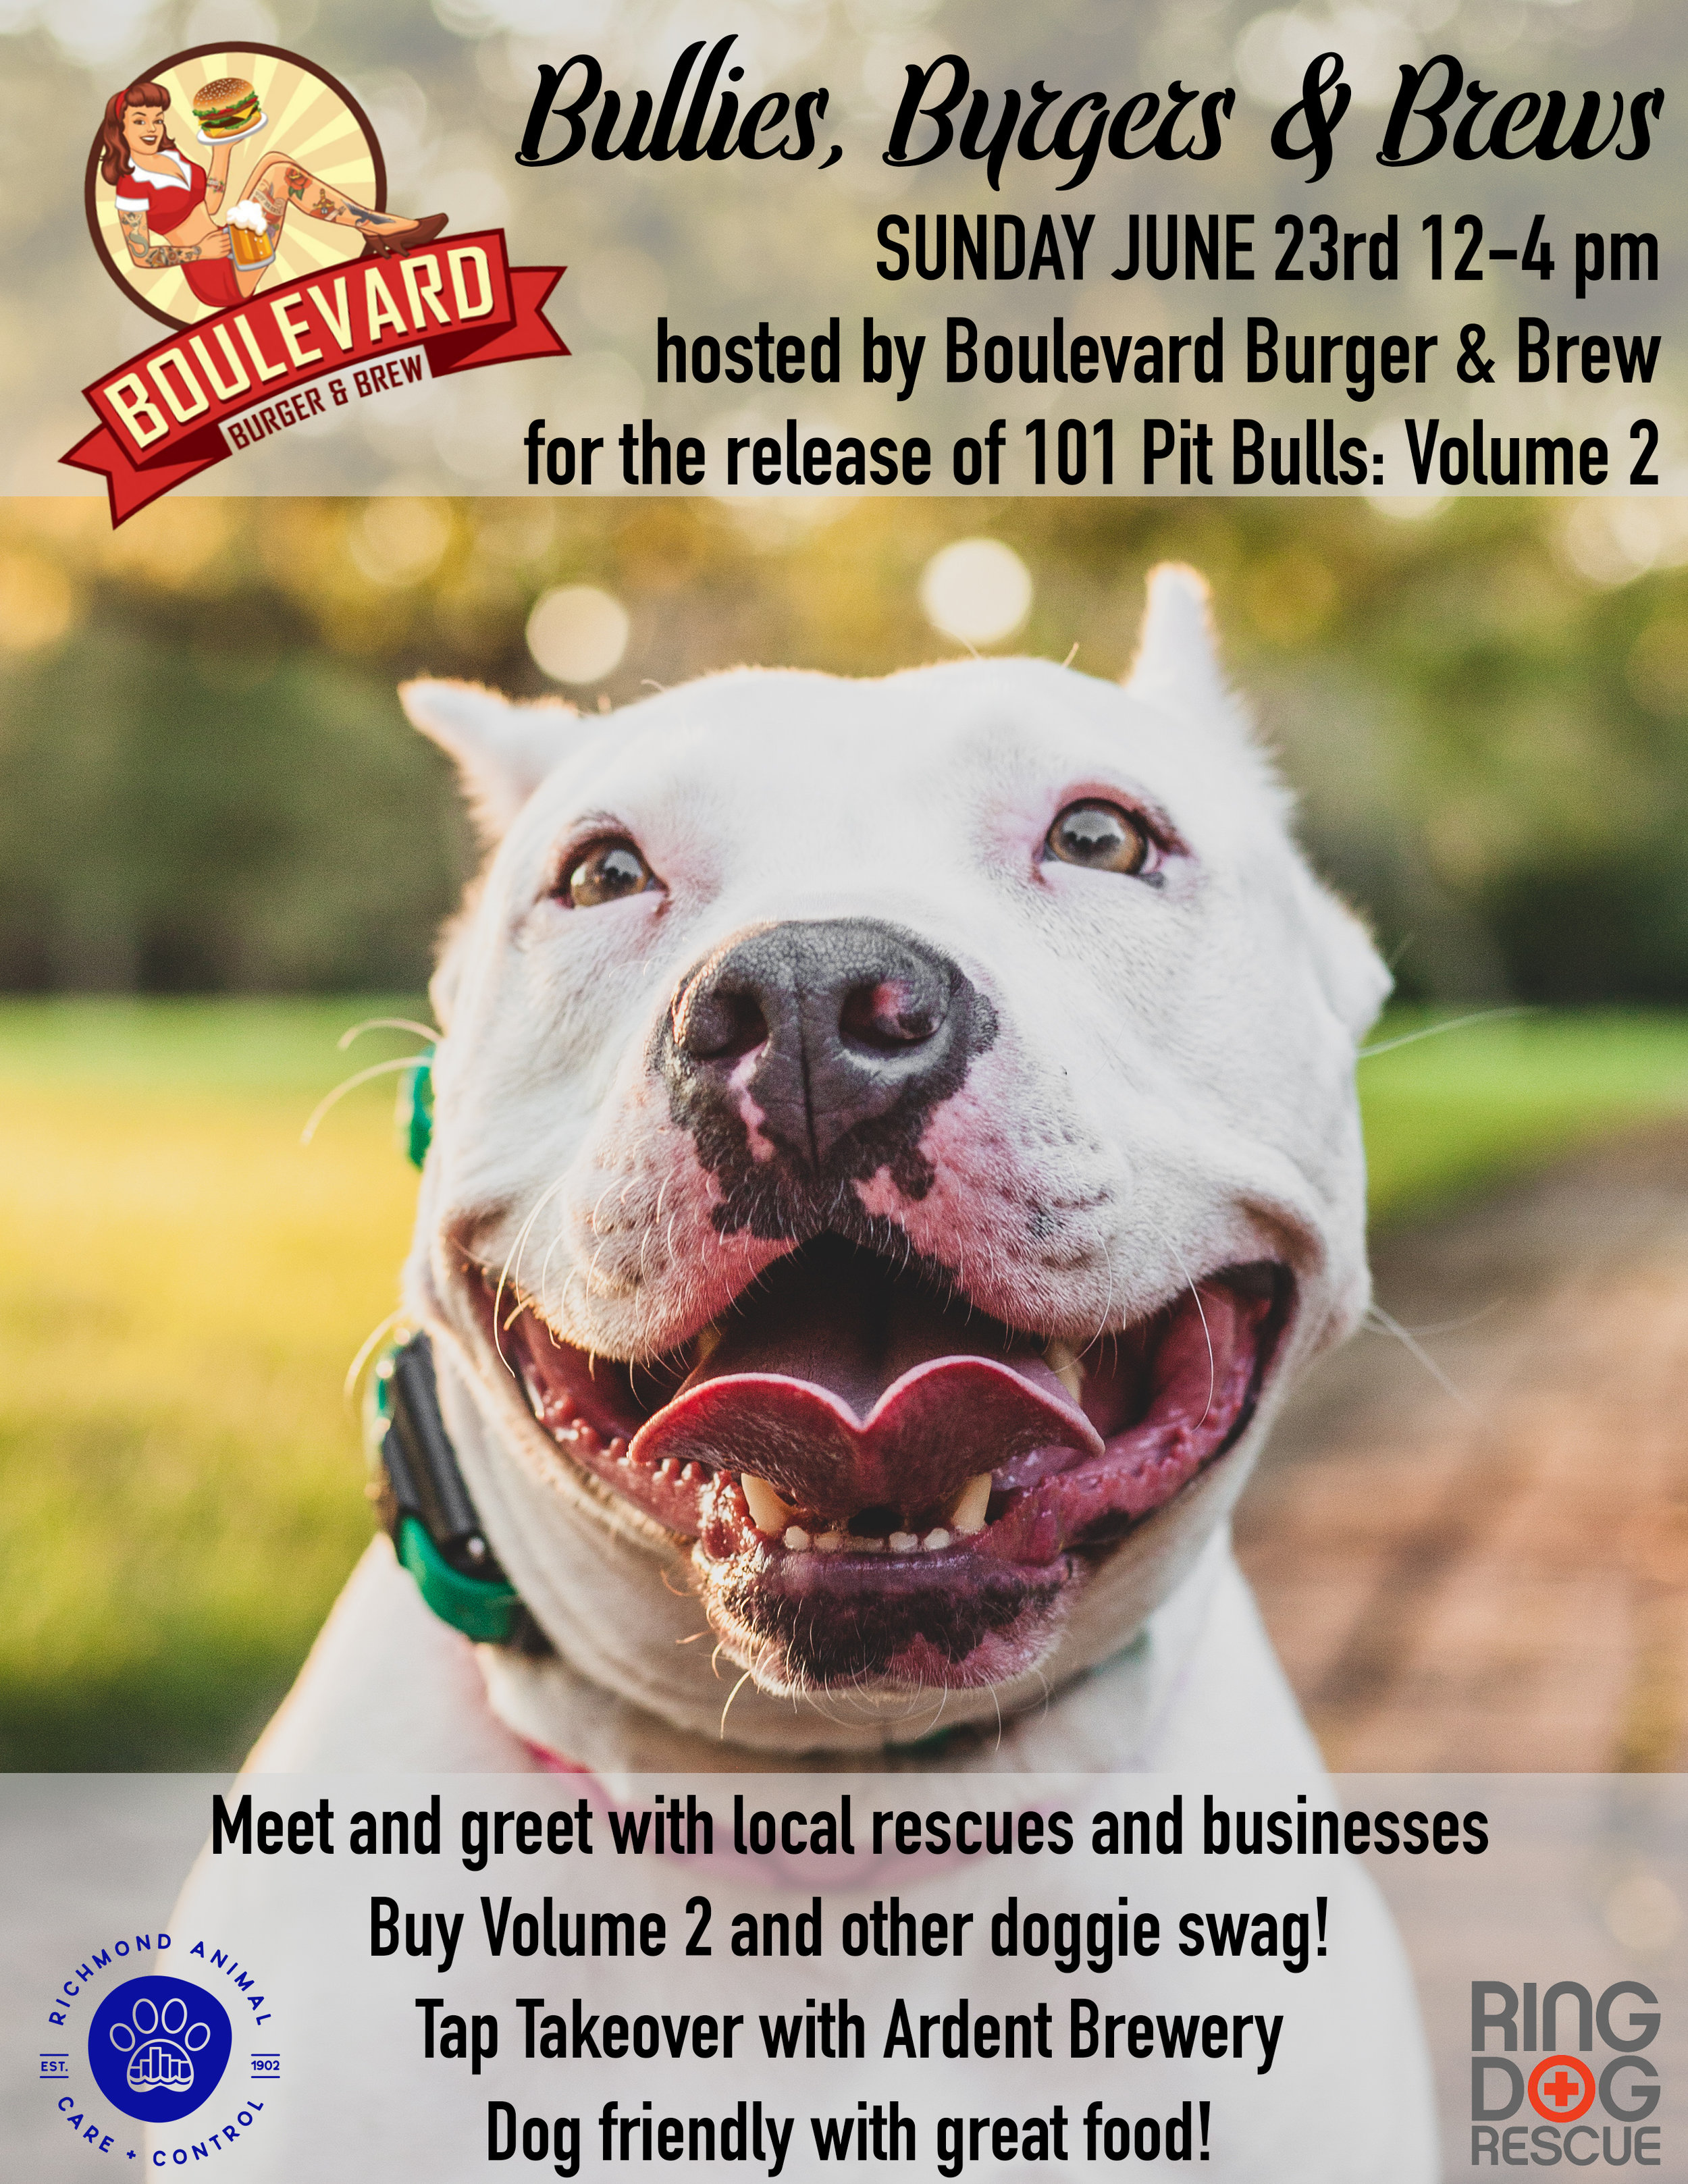 Bullies, Burgers & Brews Sunday June 23rd 12-4 - Hosted by Boulevard Burger & Brew, we will be gathering to celebrate the release of 101 Pit Bulls: Volume 2 as well as create a fun meet up for rescues, pitties and animal lovers. - Copies of Volume 1 and 2 will be available for purchase- Pick up some pittie swag and treats- Chat with local rescues and pet services- Dog friendly with baby pools (please no retractable leashes and dog social dog onlys.)- Ardent Craft Brewery Tap Takeover!- Delicious burgers and shakes